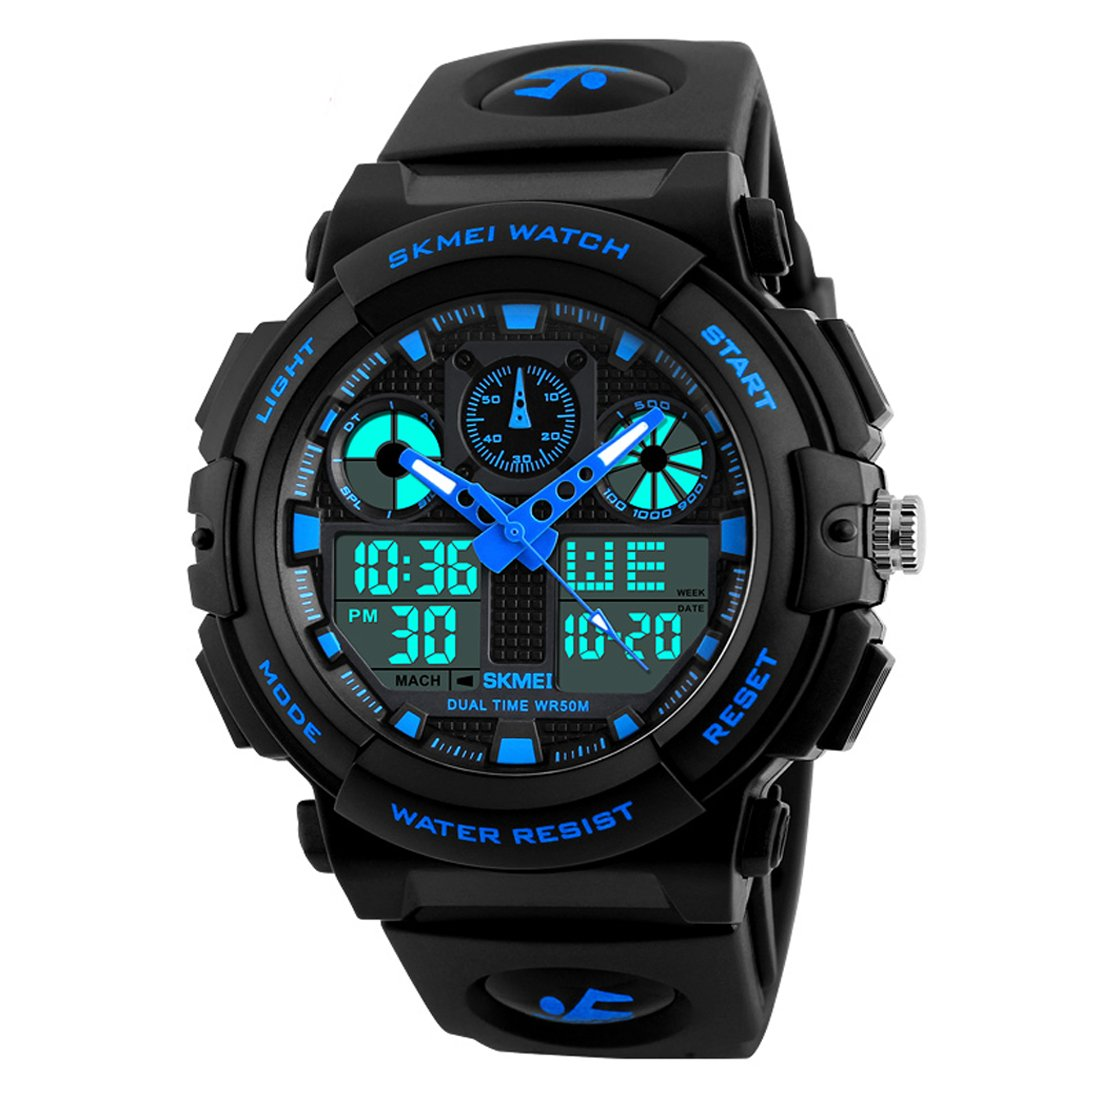 Skmei S-Shock Blue Multi-Functional Analog Digital Sports Watch for Men's & Boys product image